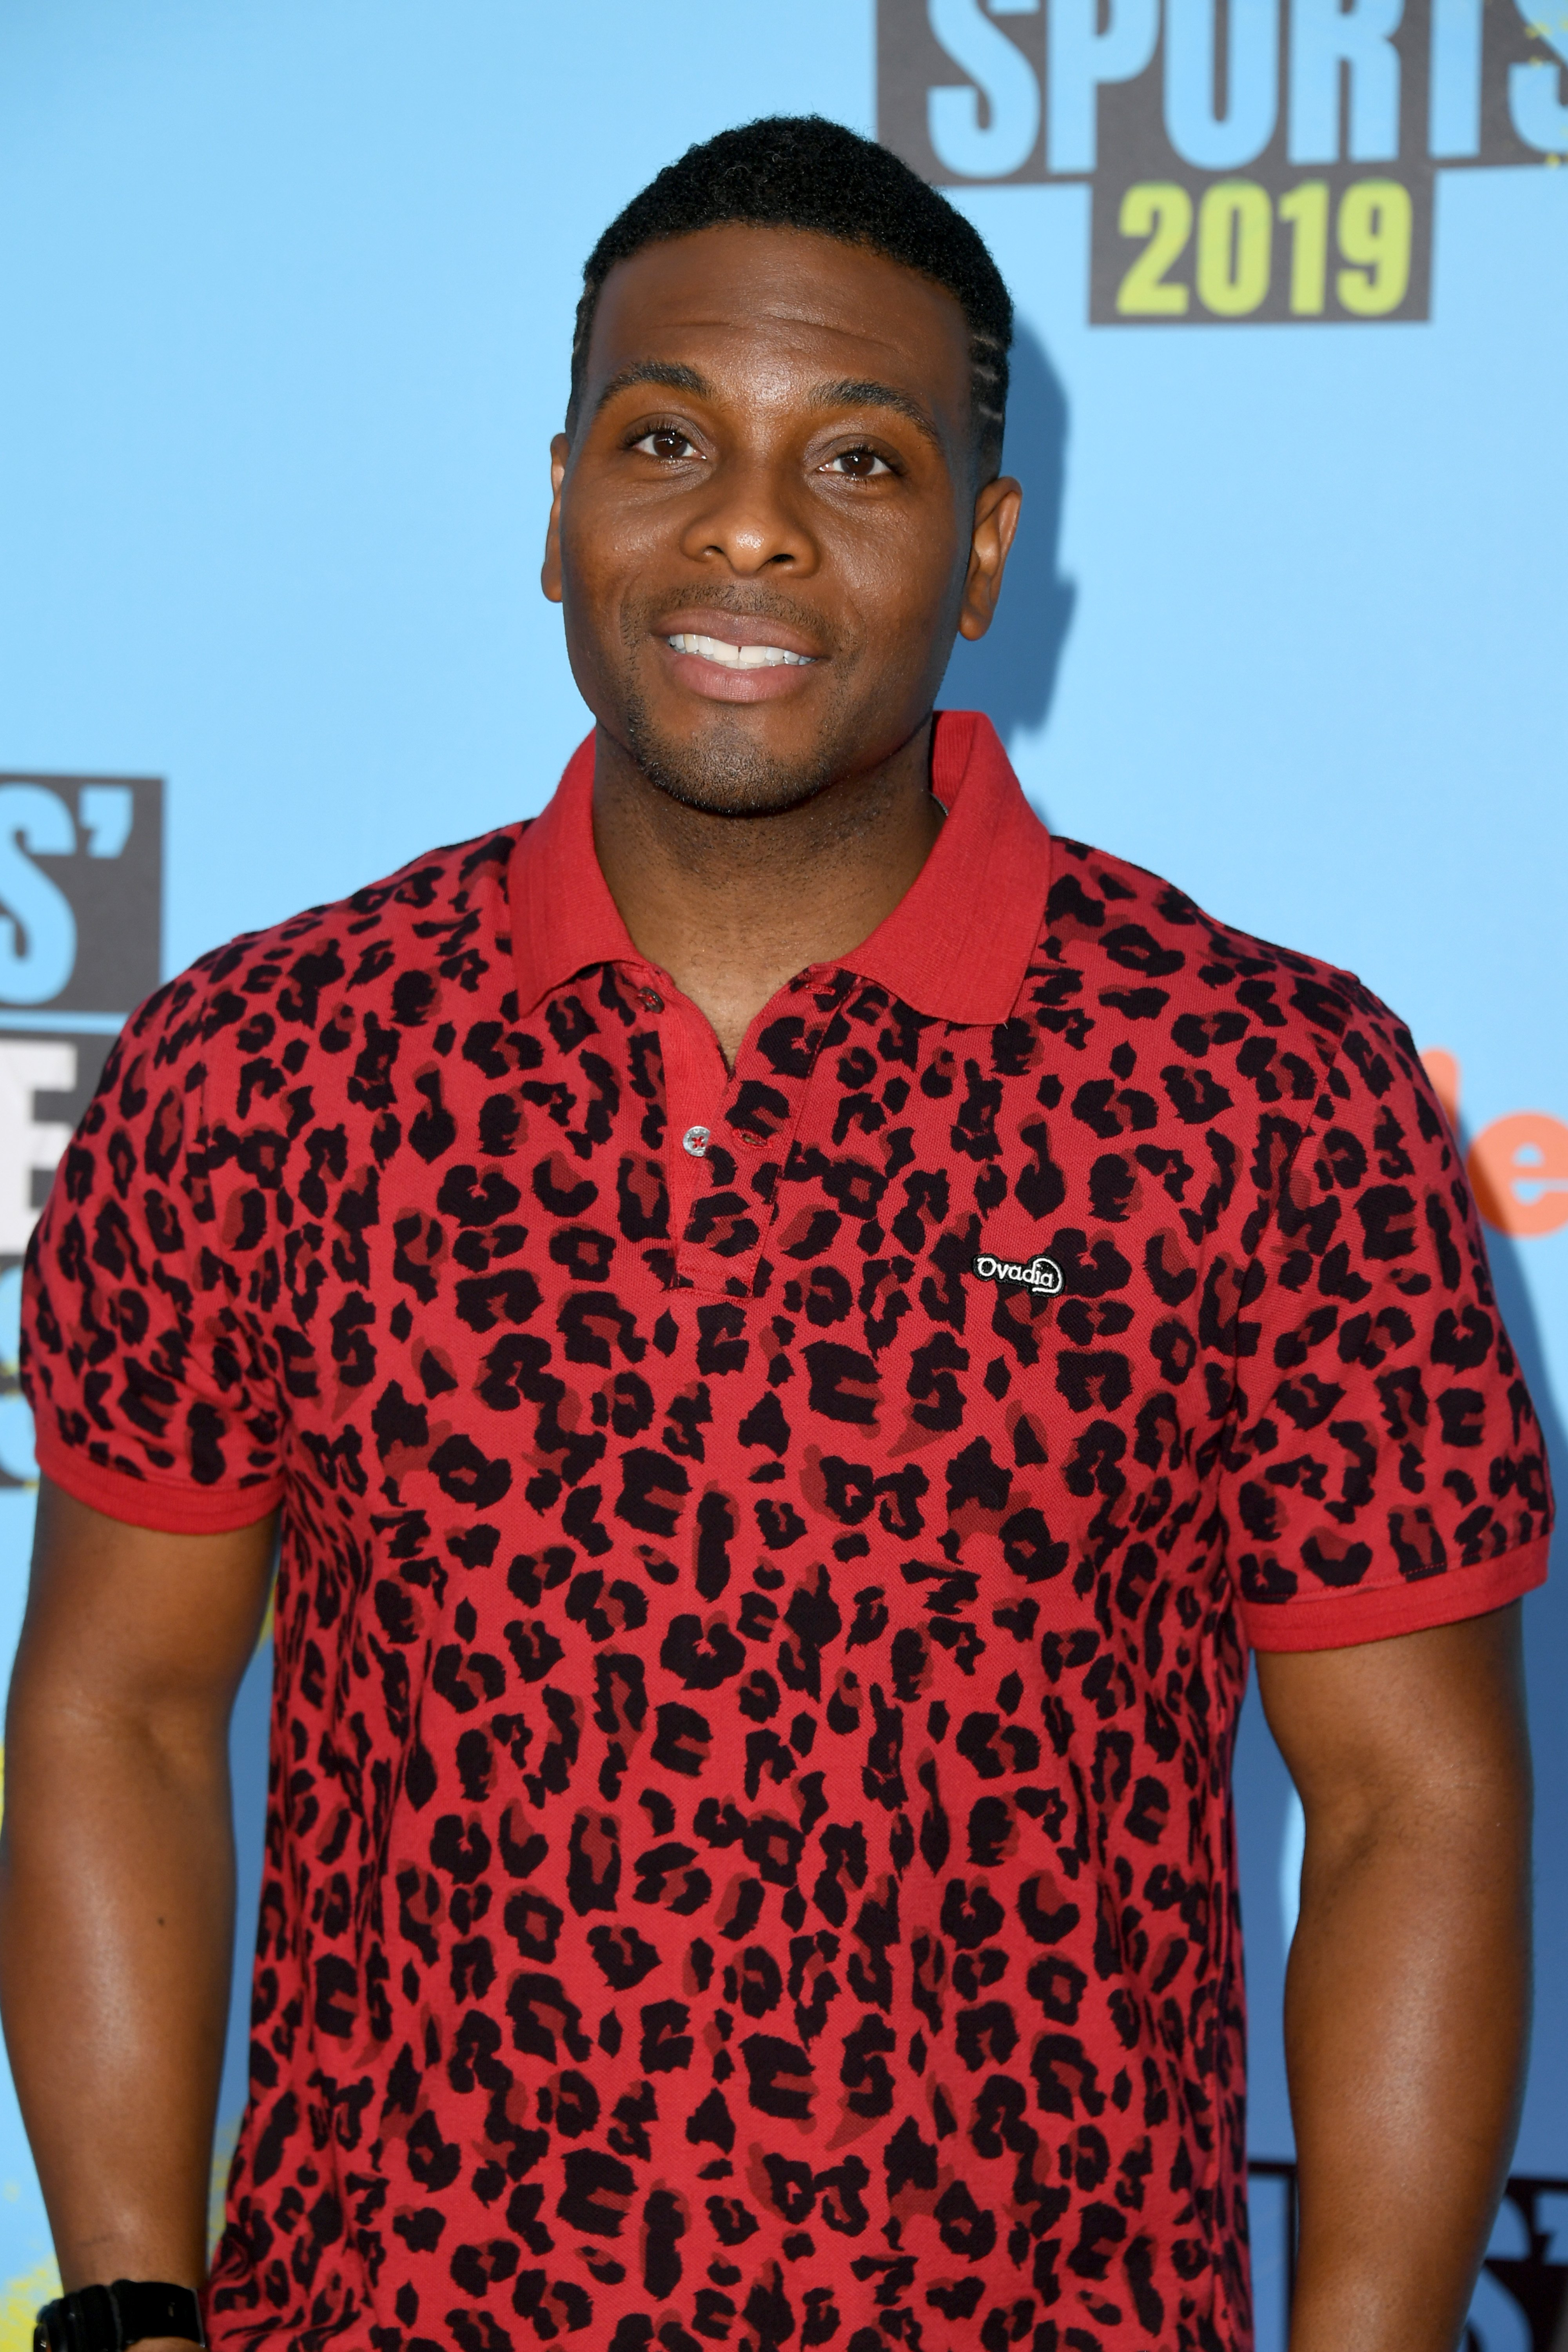 Kel Mitchell at the Nickelodeon Kids' Choice Sports 2019 at Barker Hangar on July 11, 2019 in Santa Monica, California. | Source: Getty Images